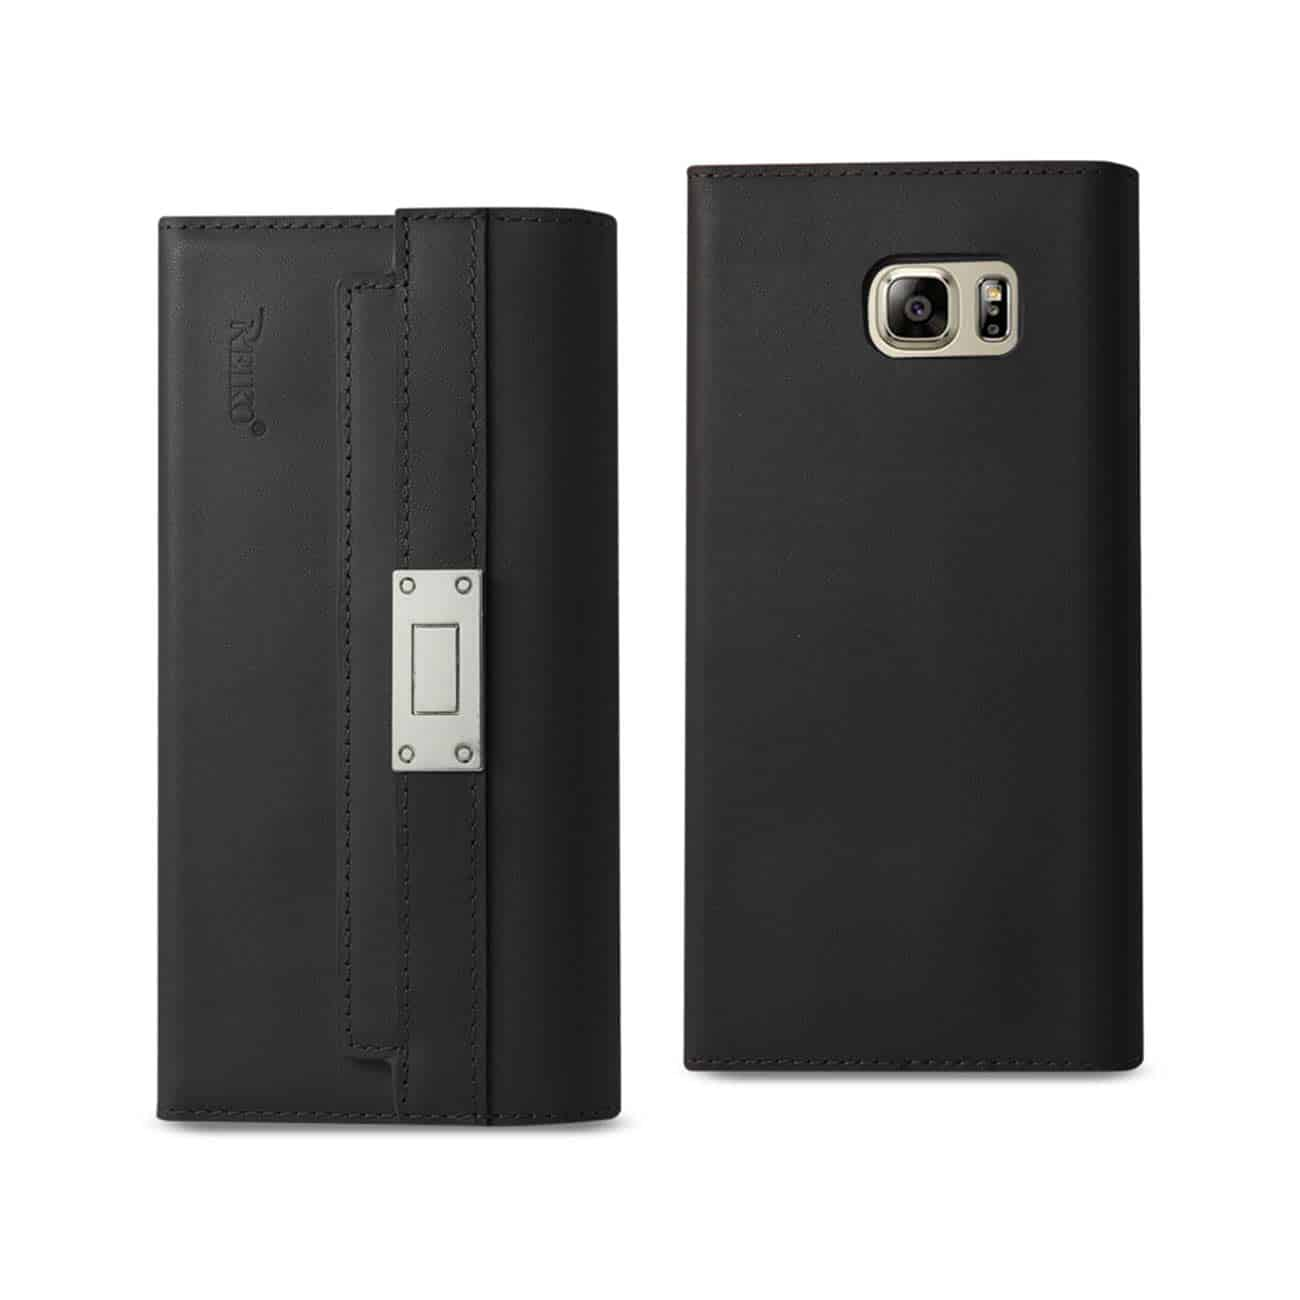 SAMSUNG GALAXY NOTE 5 GENUINE LEATHER RFID WALLET CASE AND METAL BUCKLE BELT IN BLACK